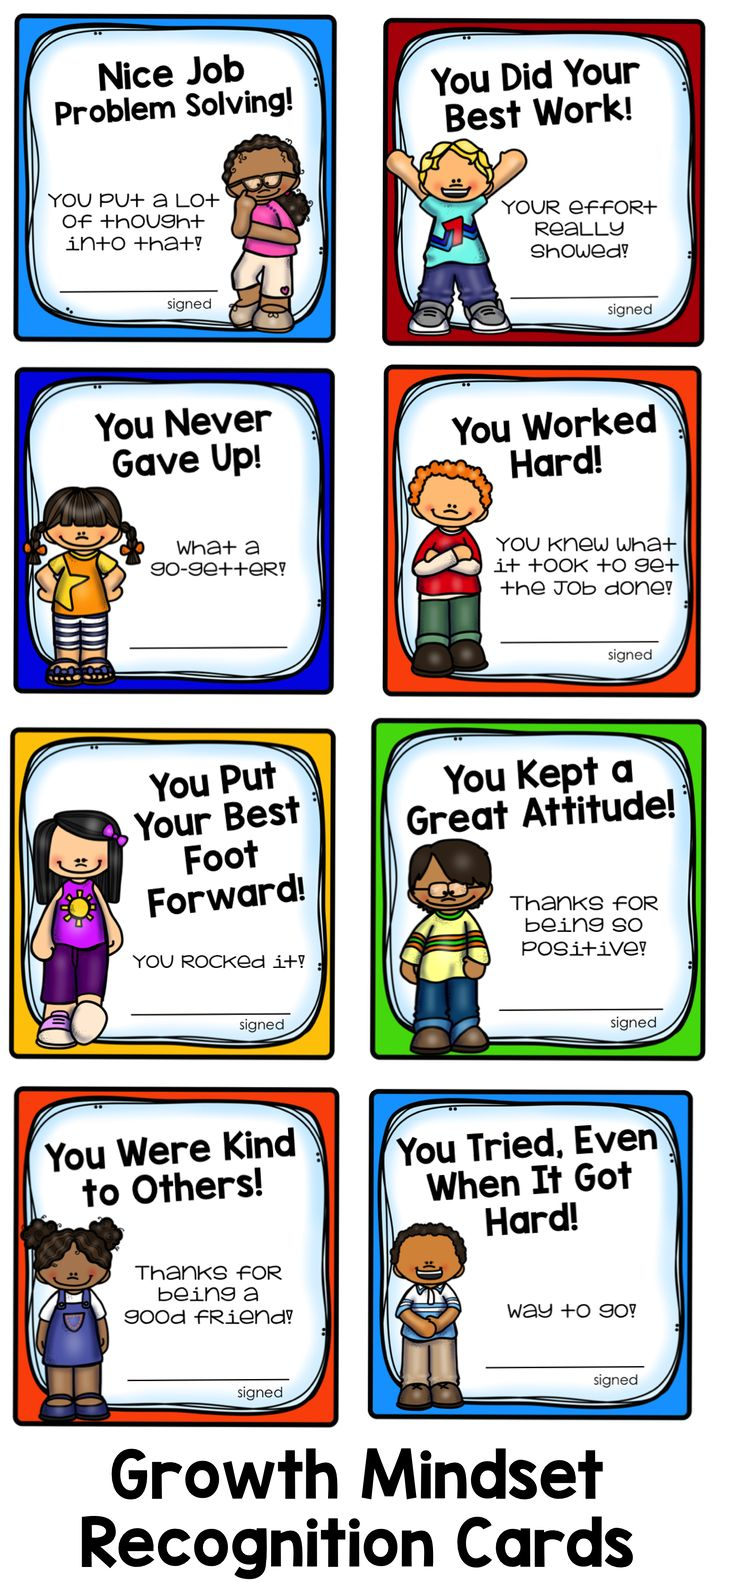 37 best images about Self assessments on Pinterest | Self ...